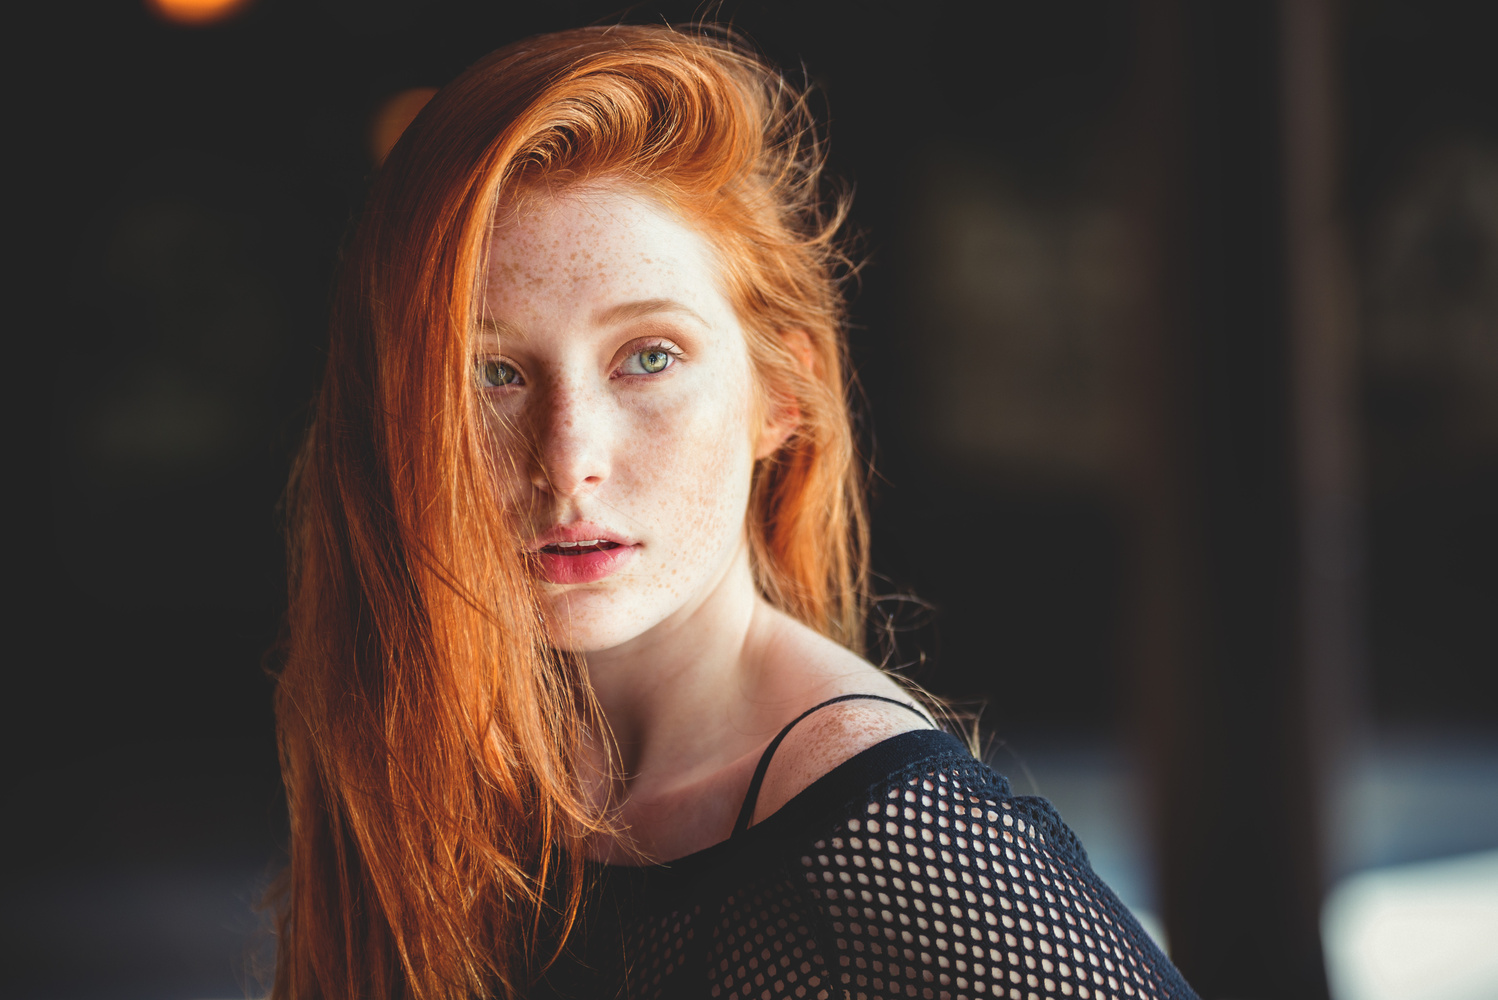 Madeline Ford by David J. Crewe